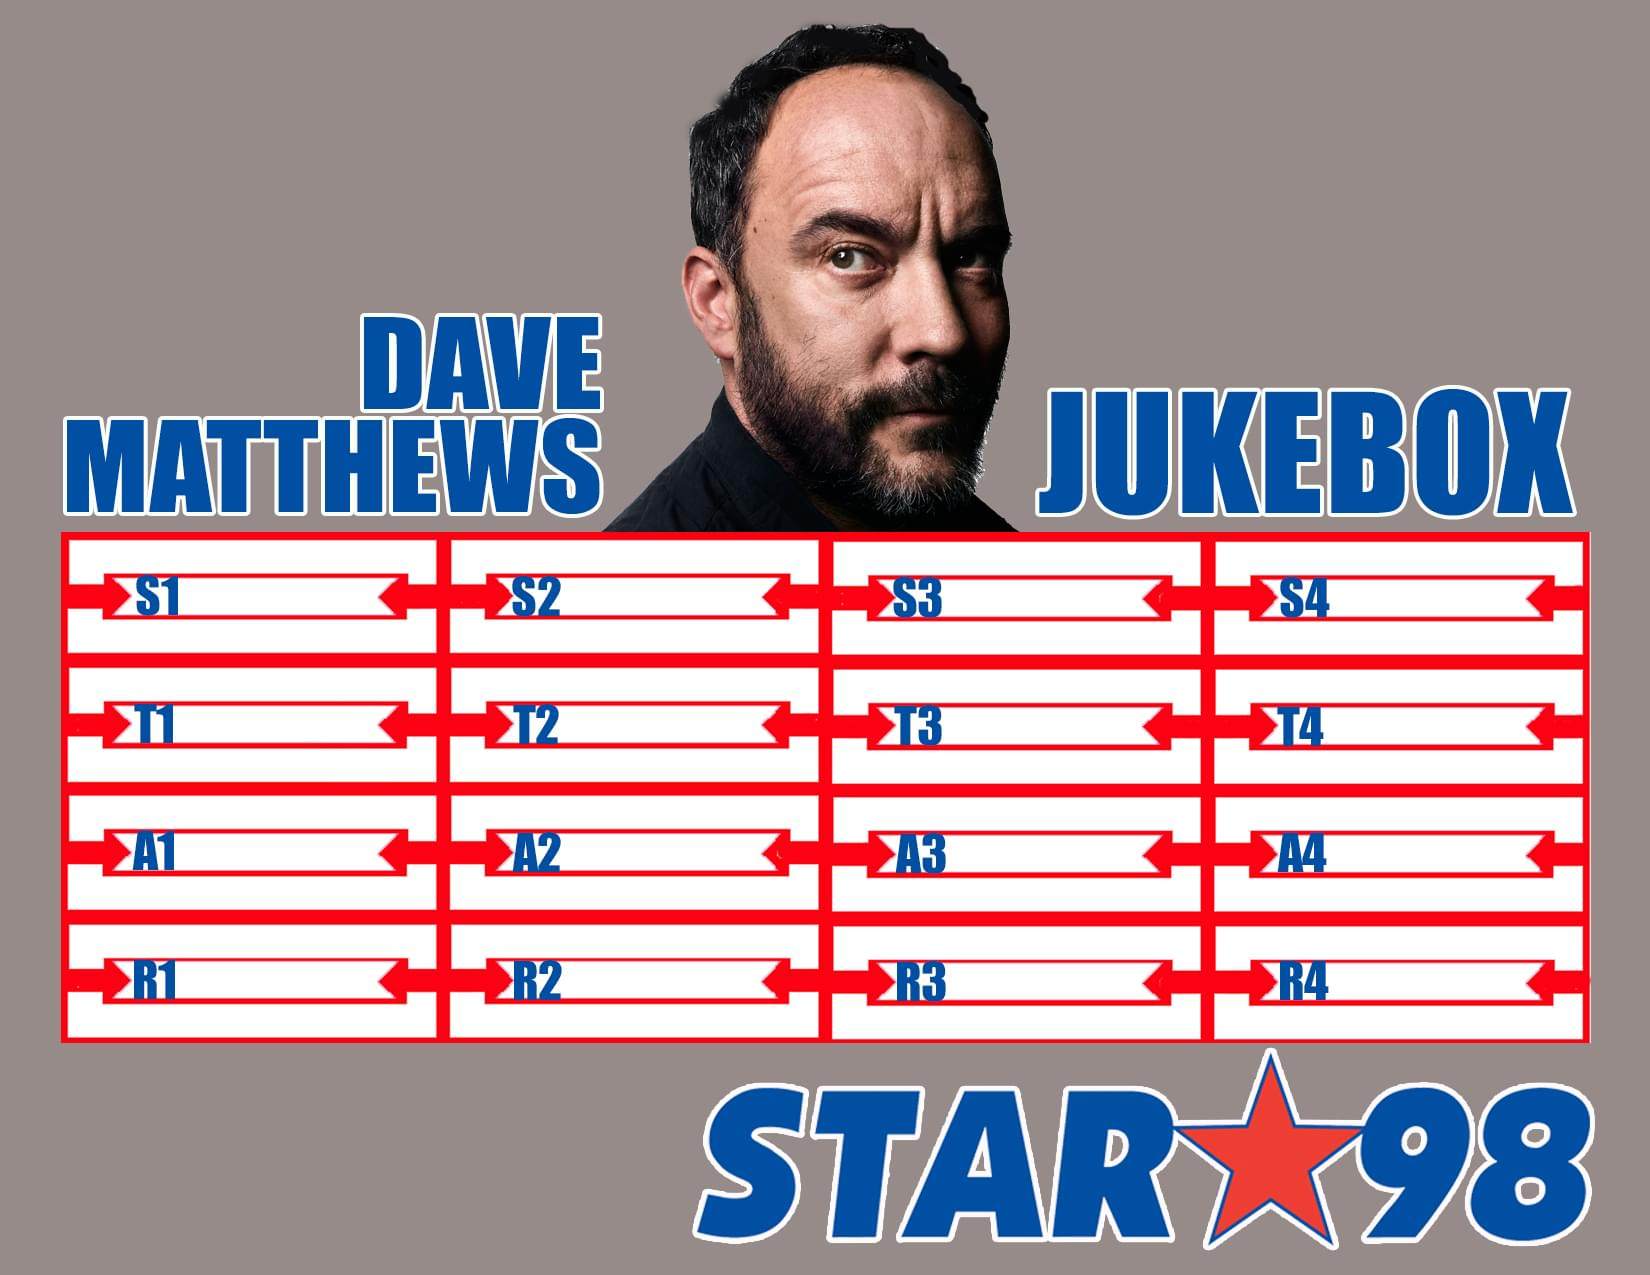 Win tickets to Dave Matthews Band!